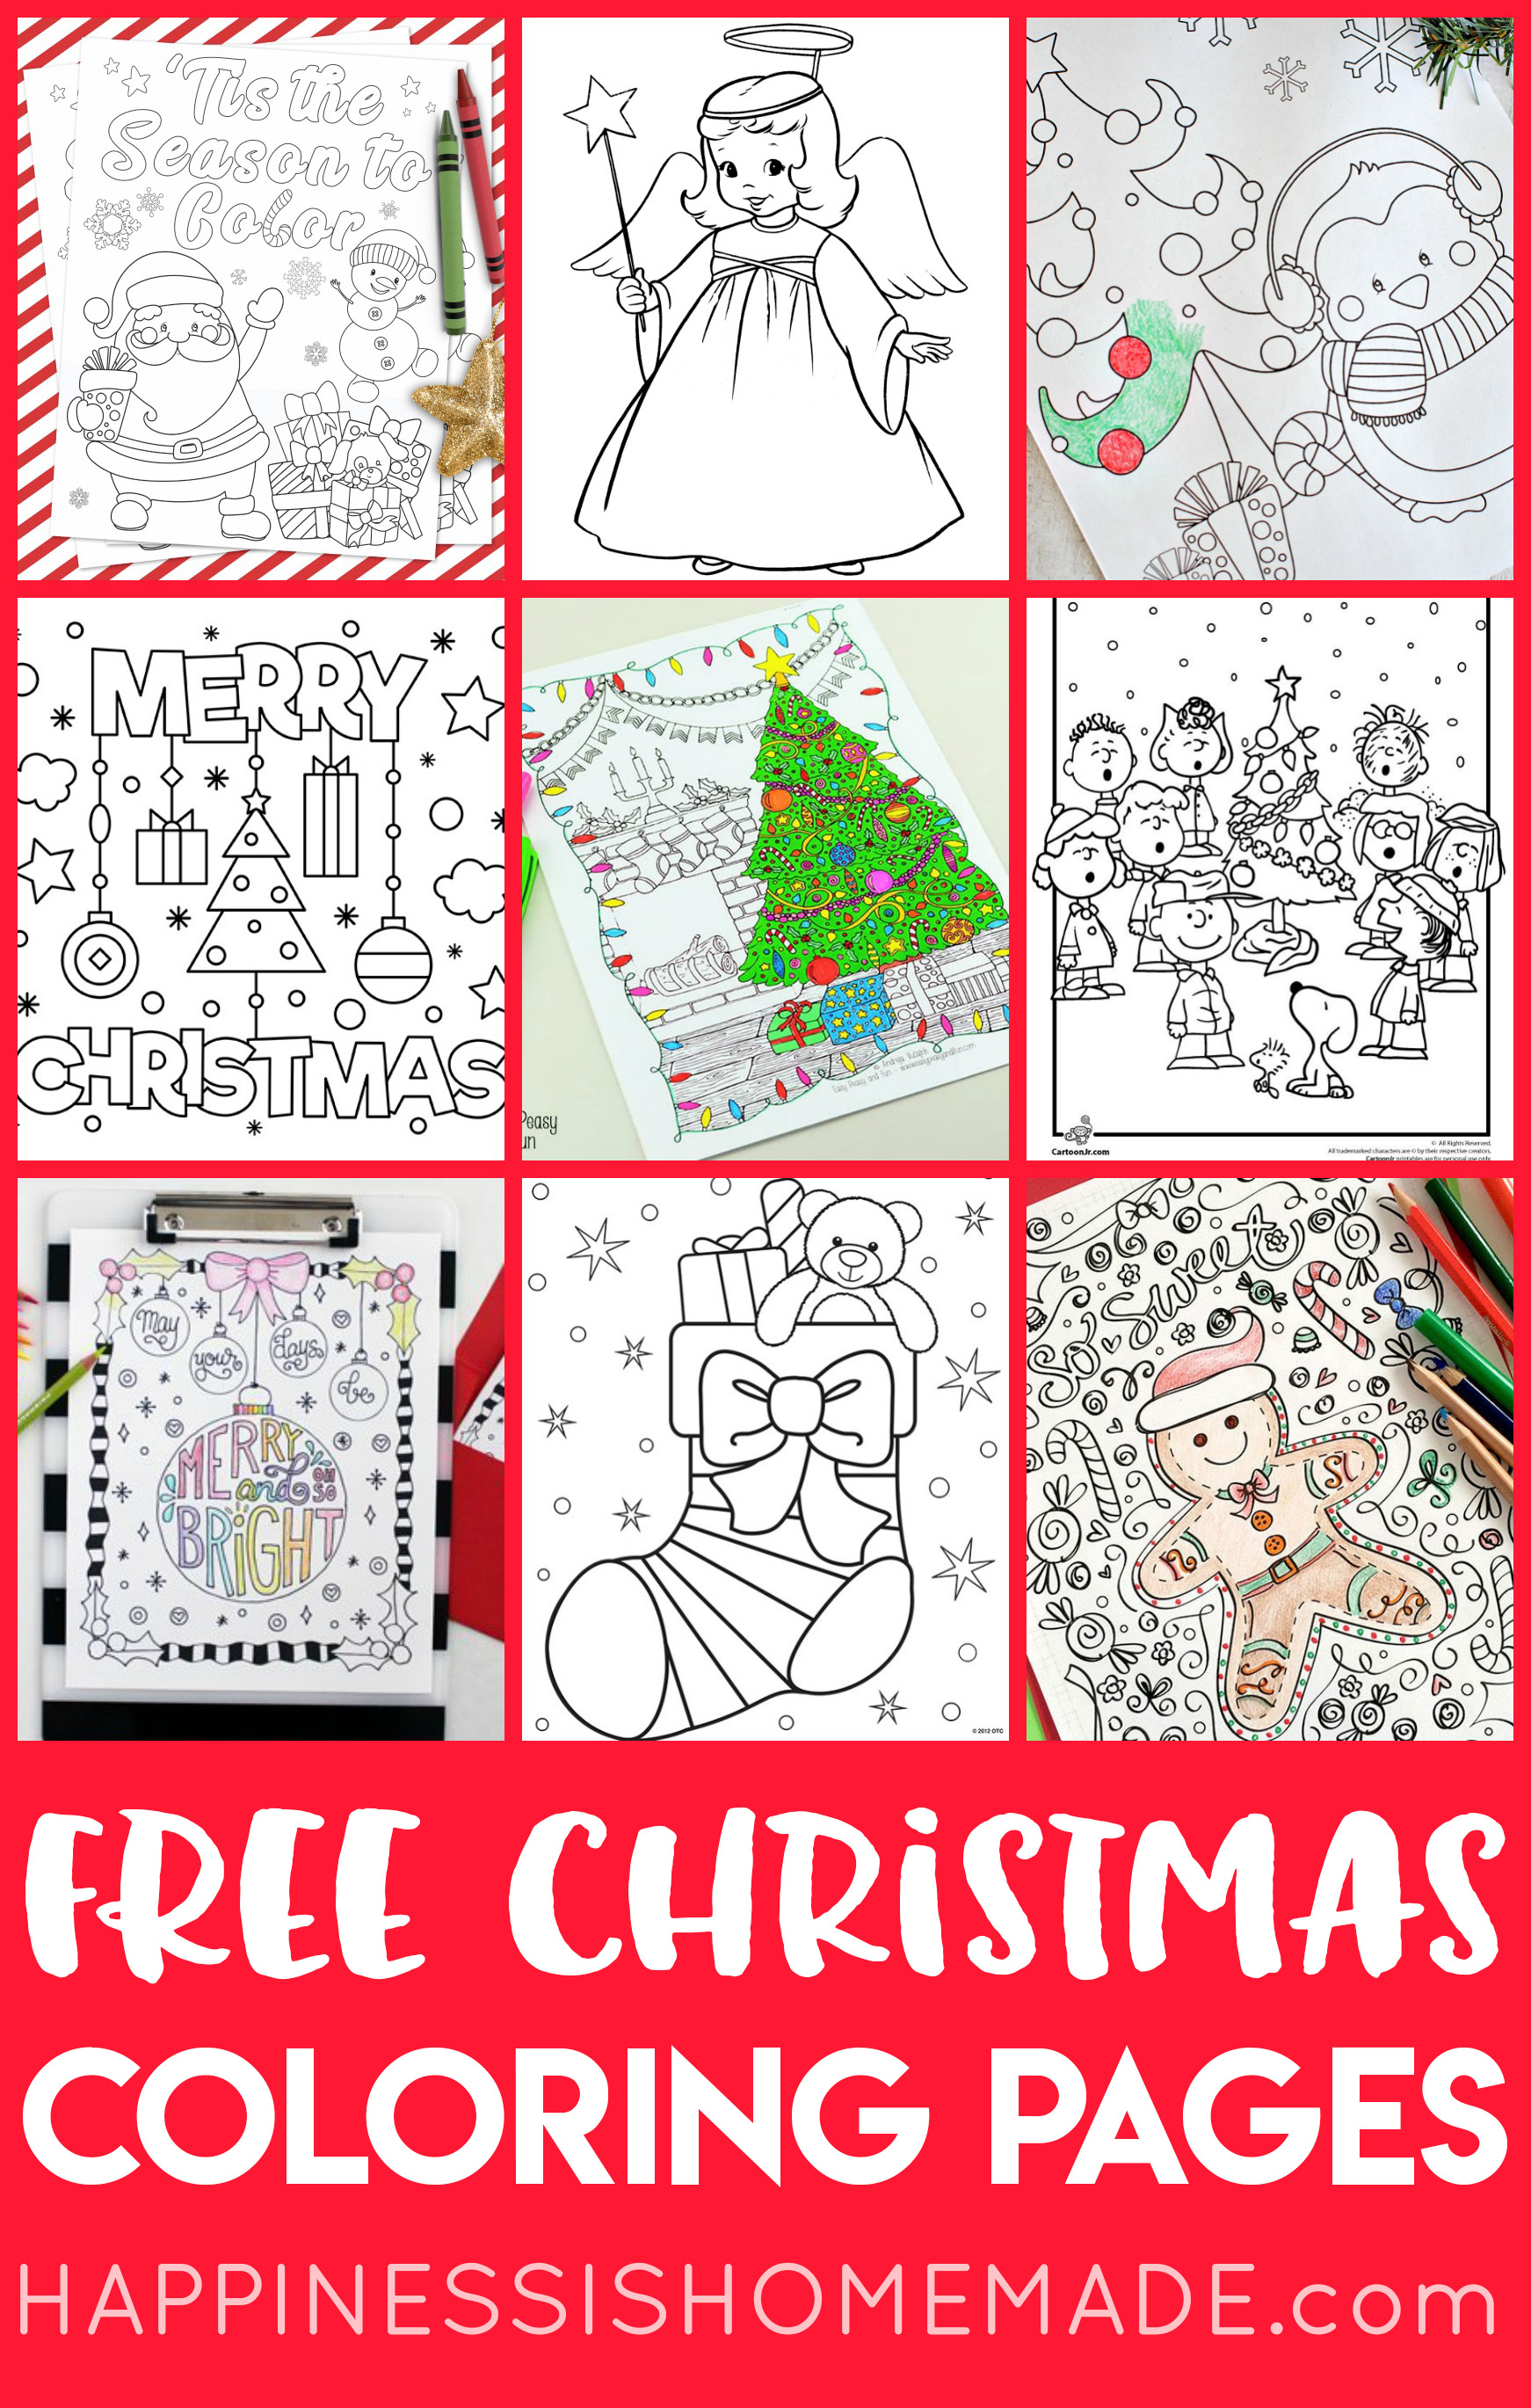 Christmas mickey mouse charlie brown christmas trees snowmen santa claus and more these printable christmas coloring sheets are sure to be a huge hit